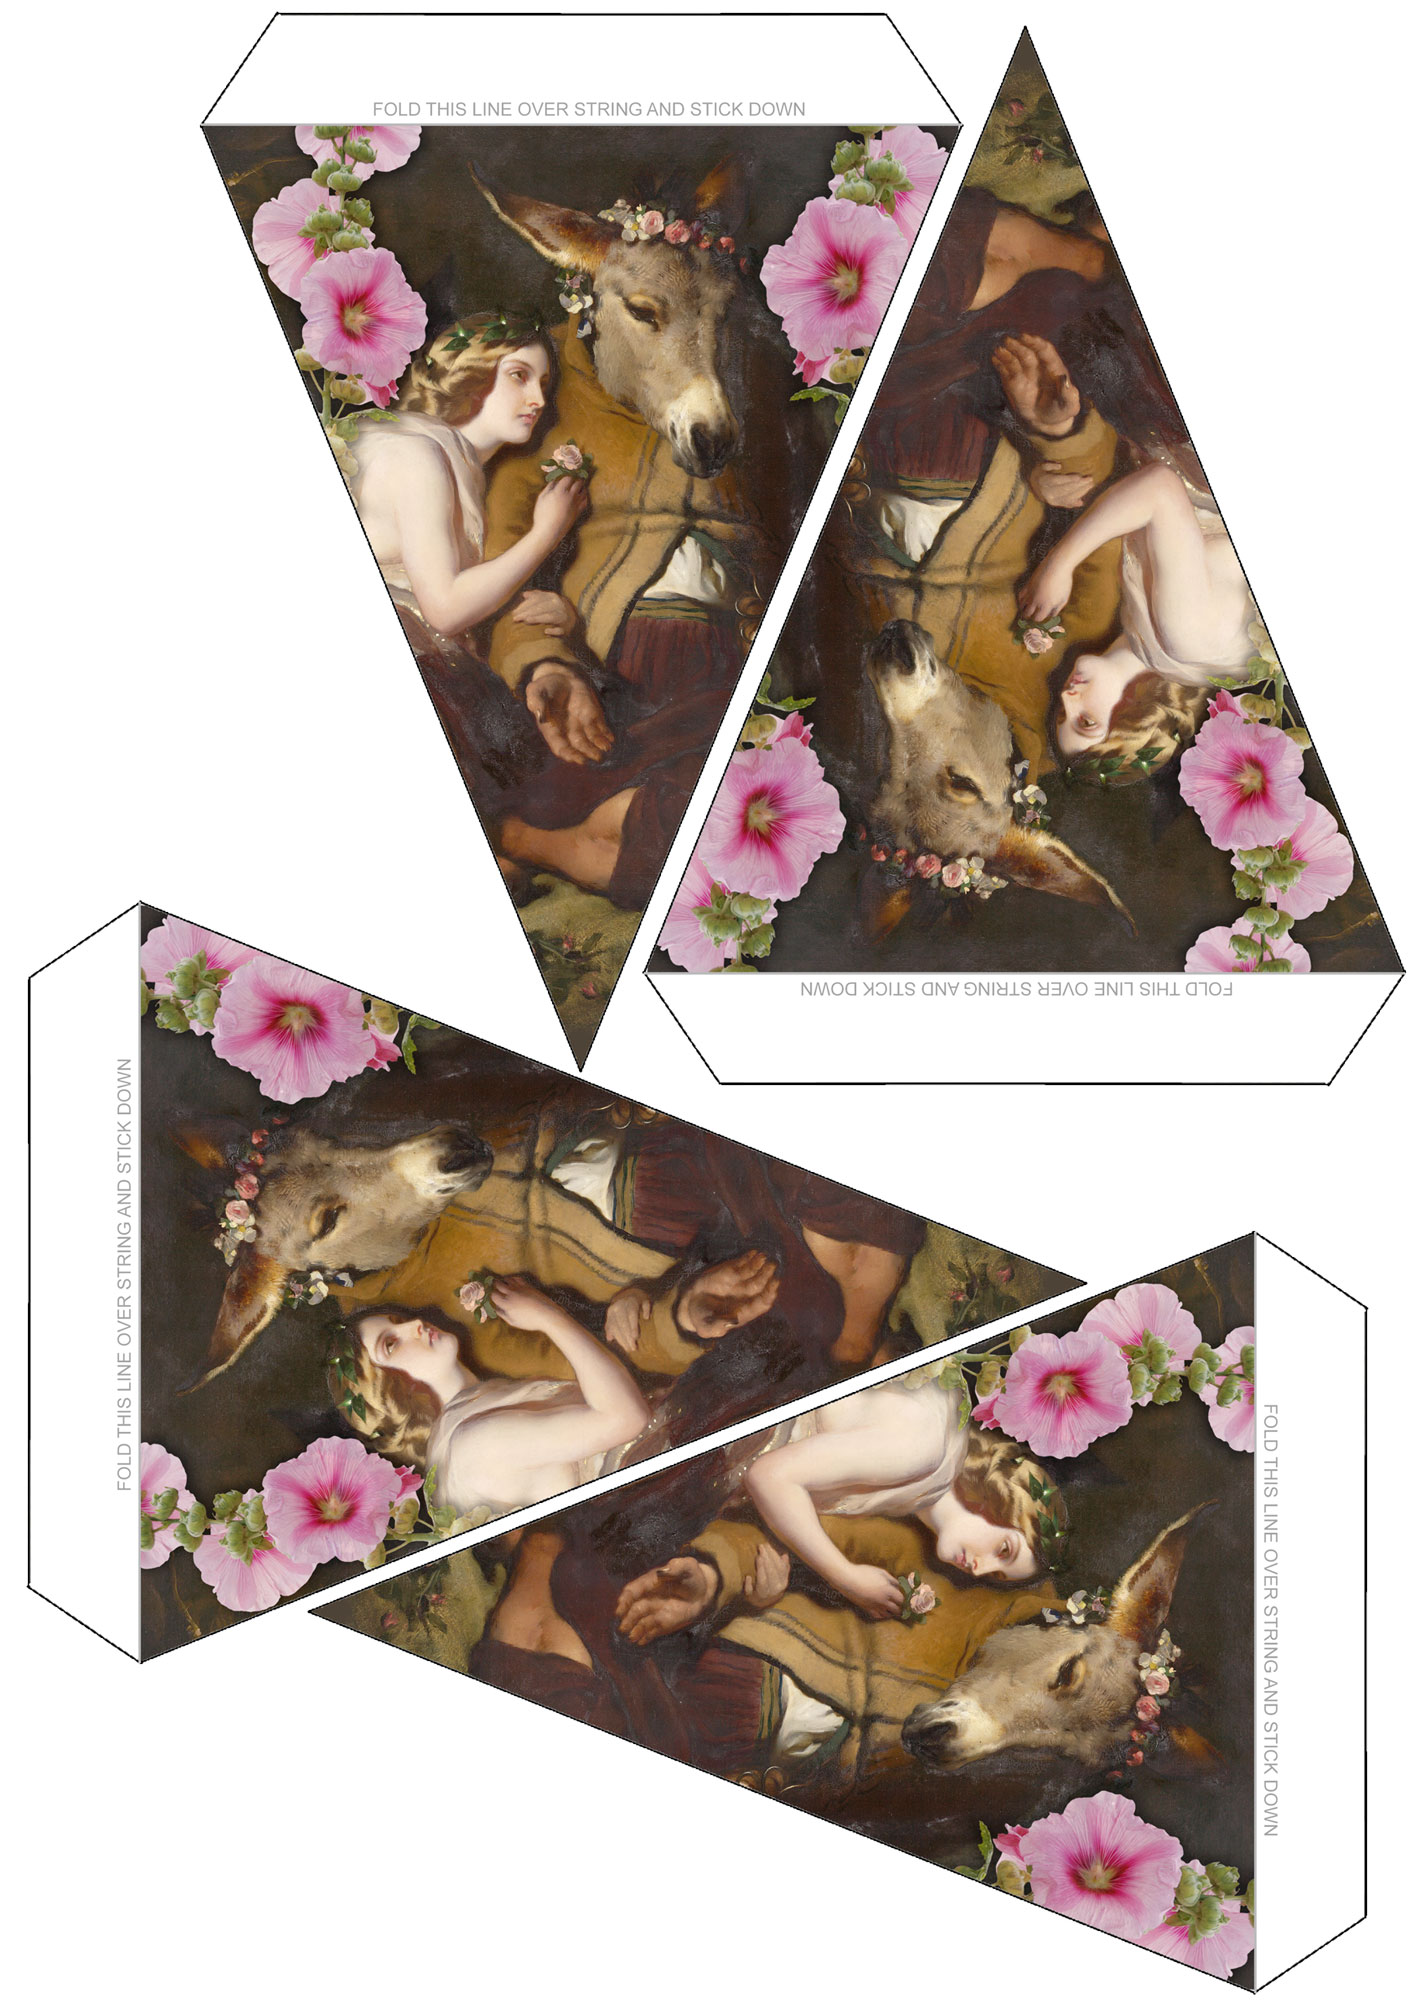 A sheet of bunting inspired by Titania falling in love with Bottom in Shakespeare's A Midsummer Night's Dream.